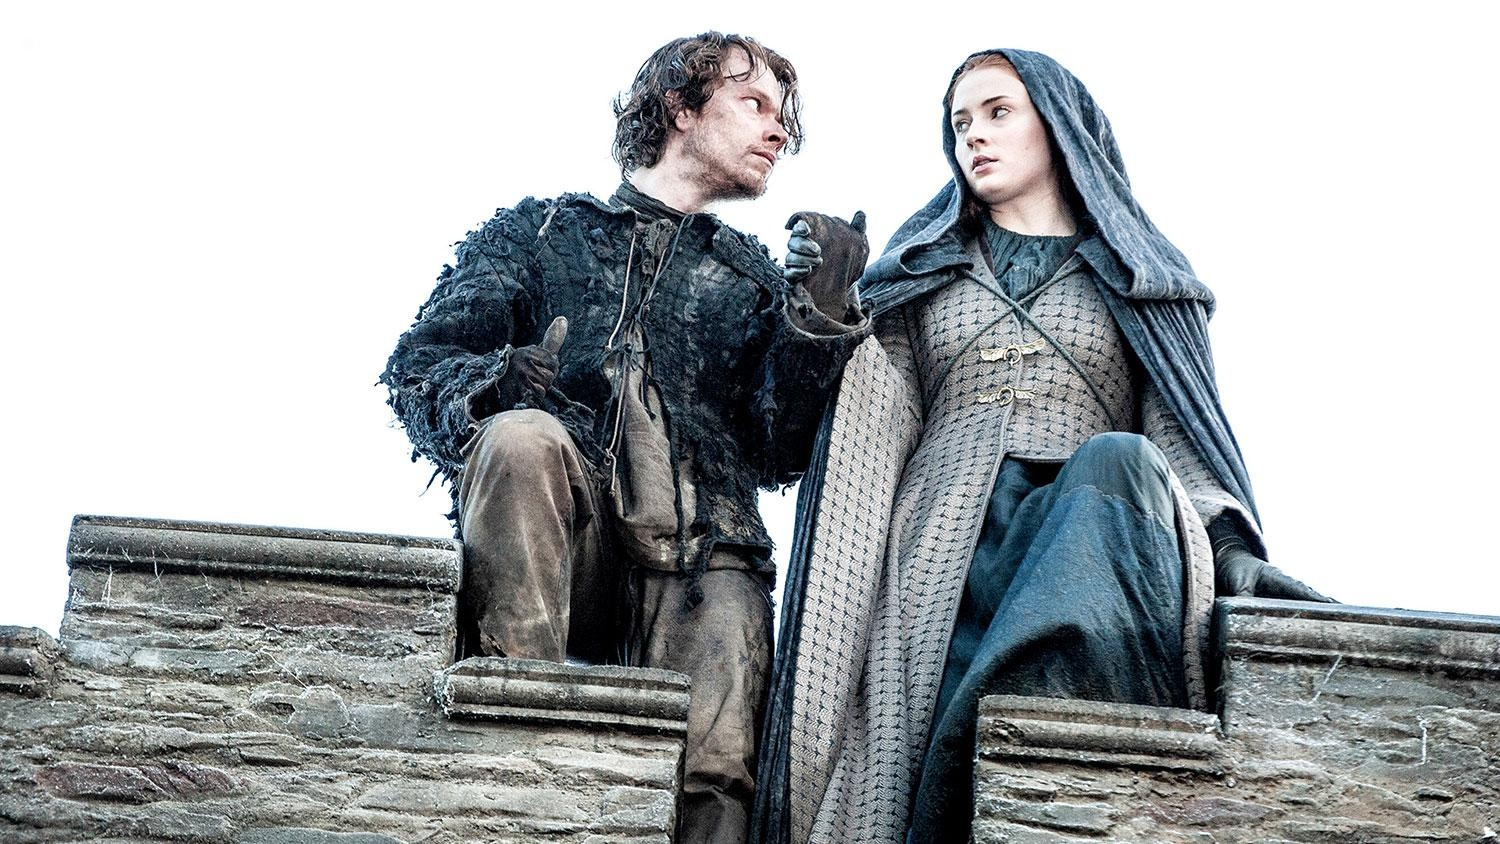 game-of-thrones-mothers-mercy-screenshot-4-1500x844